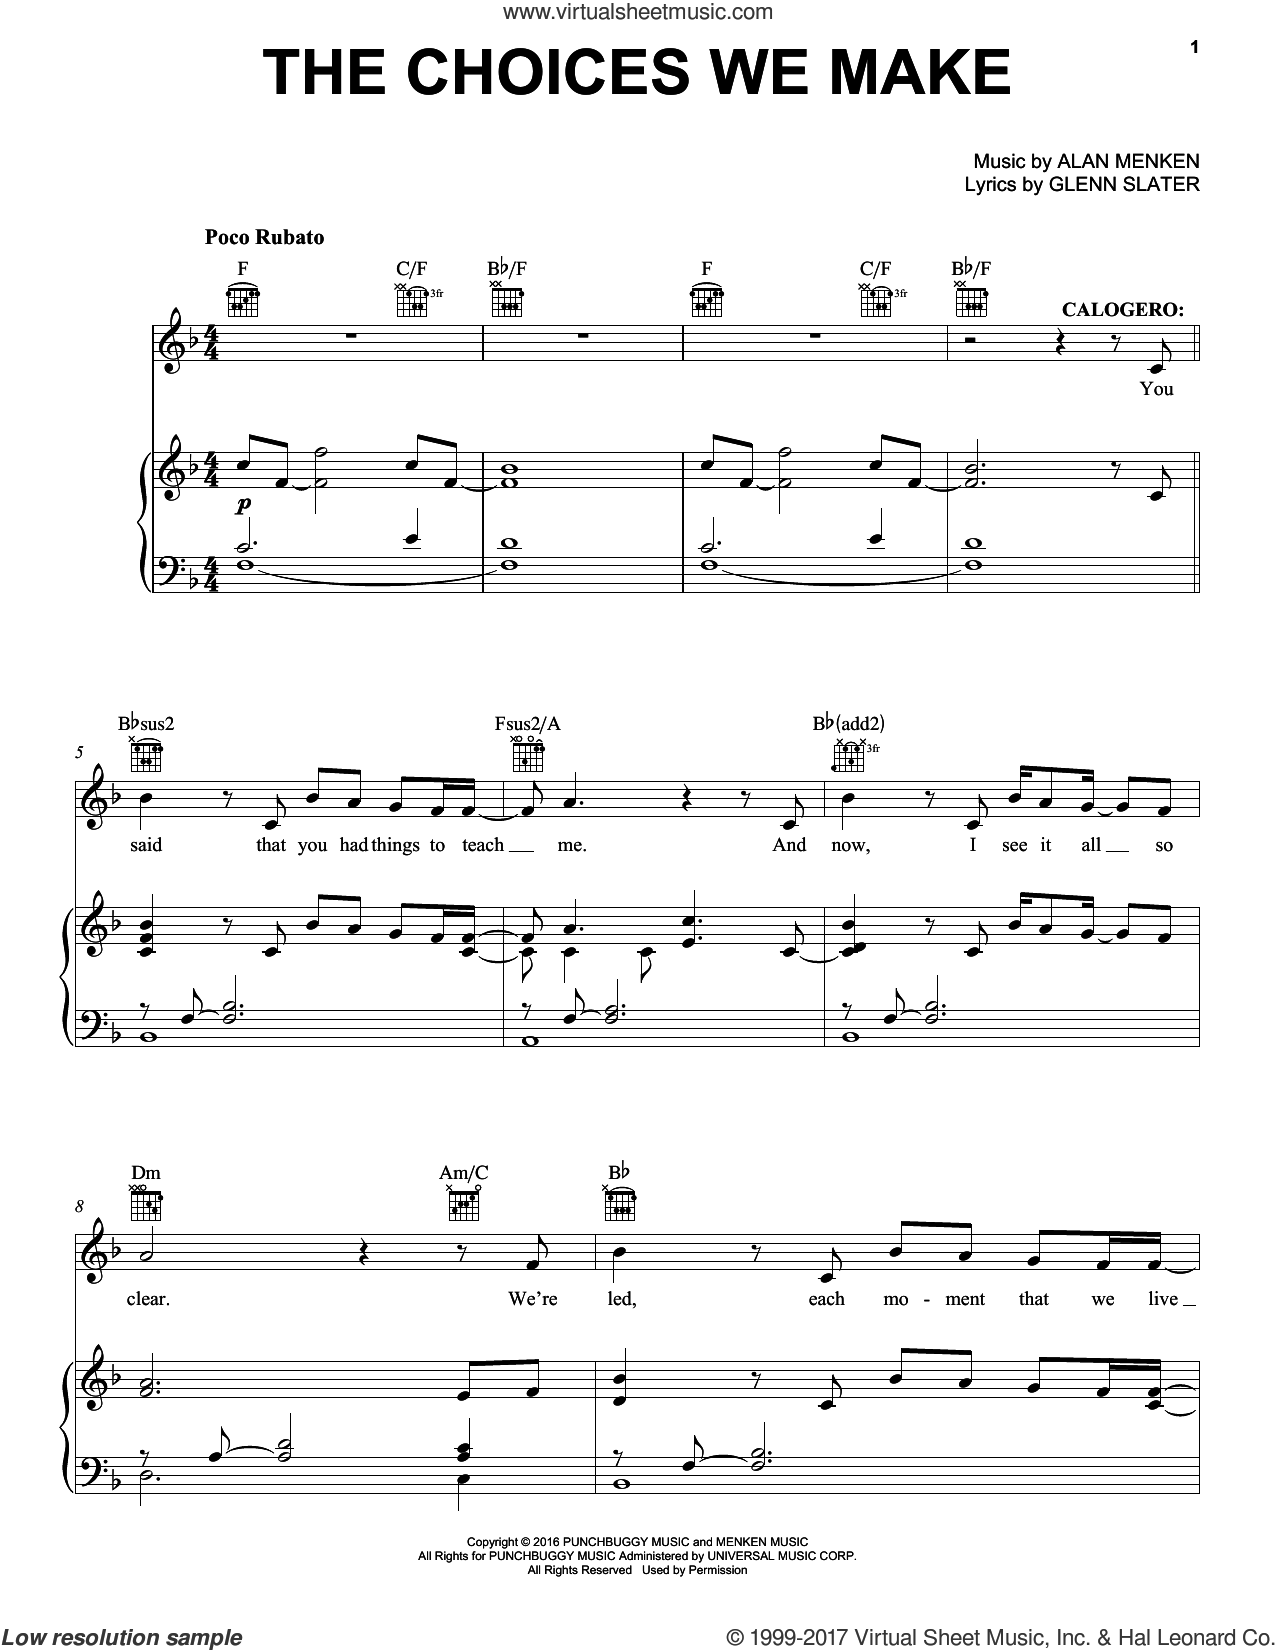 The Choices We Make sheet music for voice, piano or guitar by Alan Menken and Glenn Slater, intermediate skill level